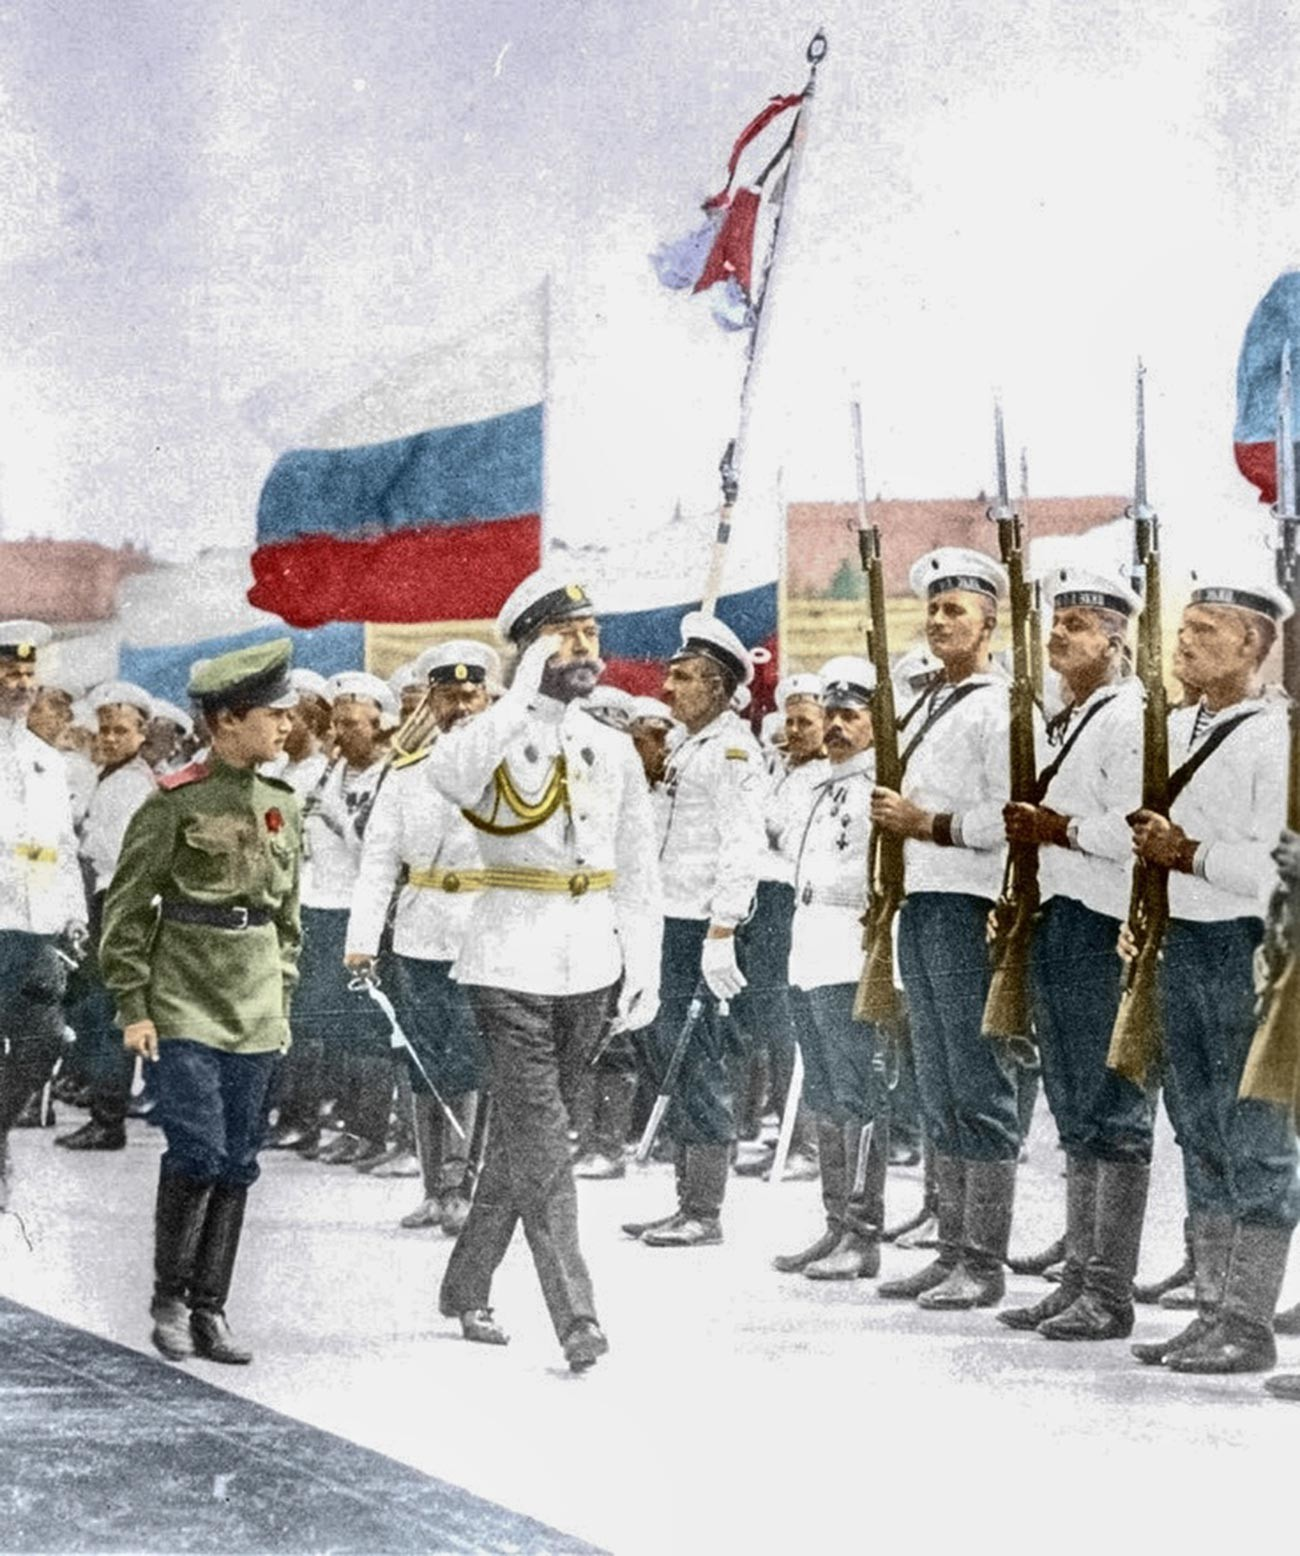 Nicholas II set the white-blue-red flag as a national Russian flag in 1896